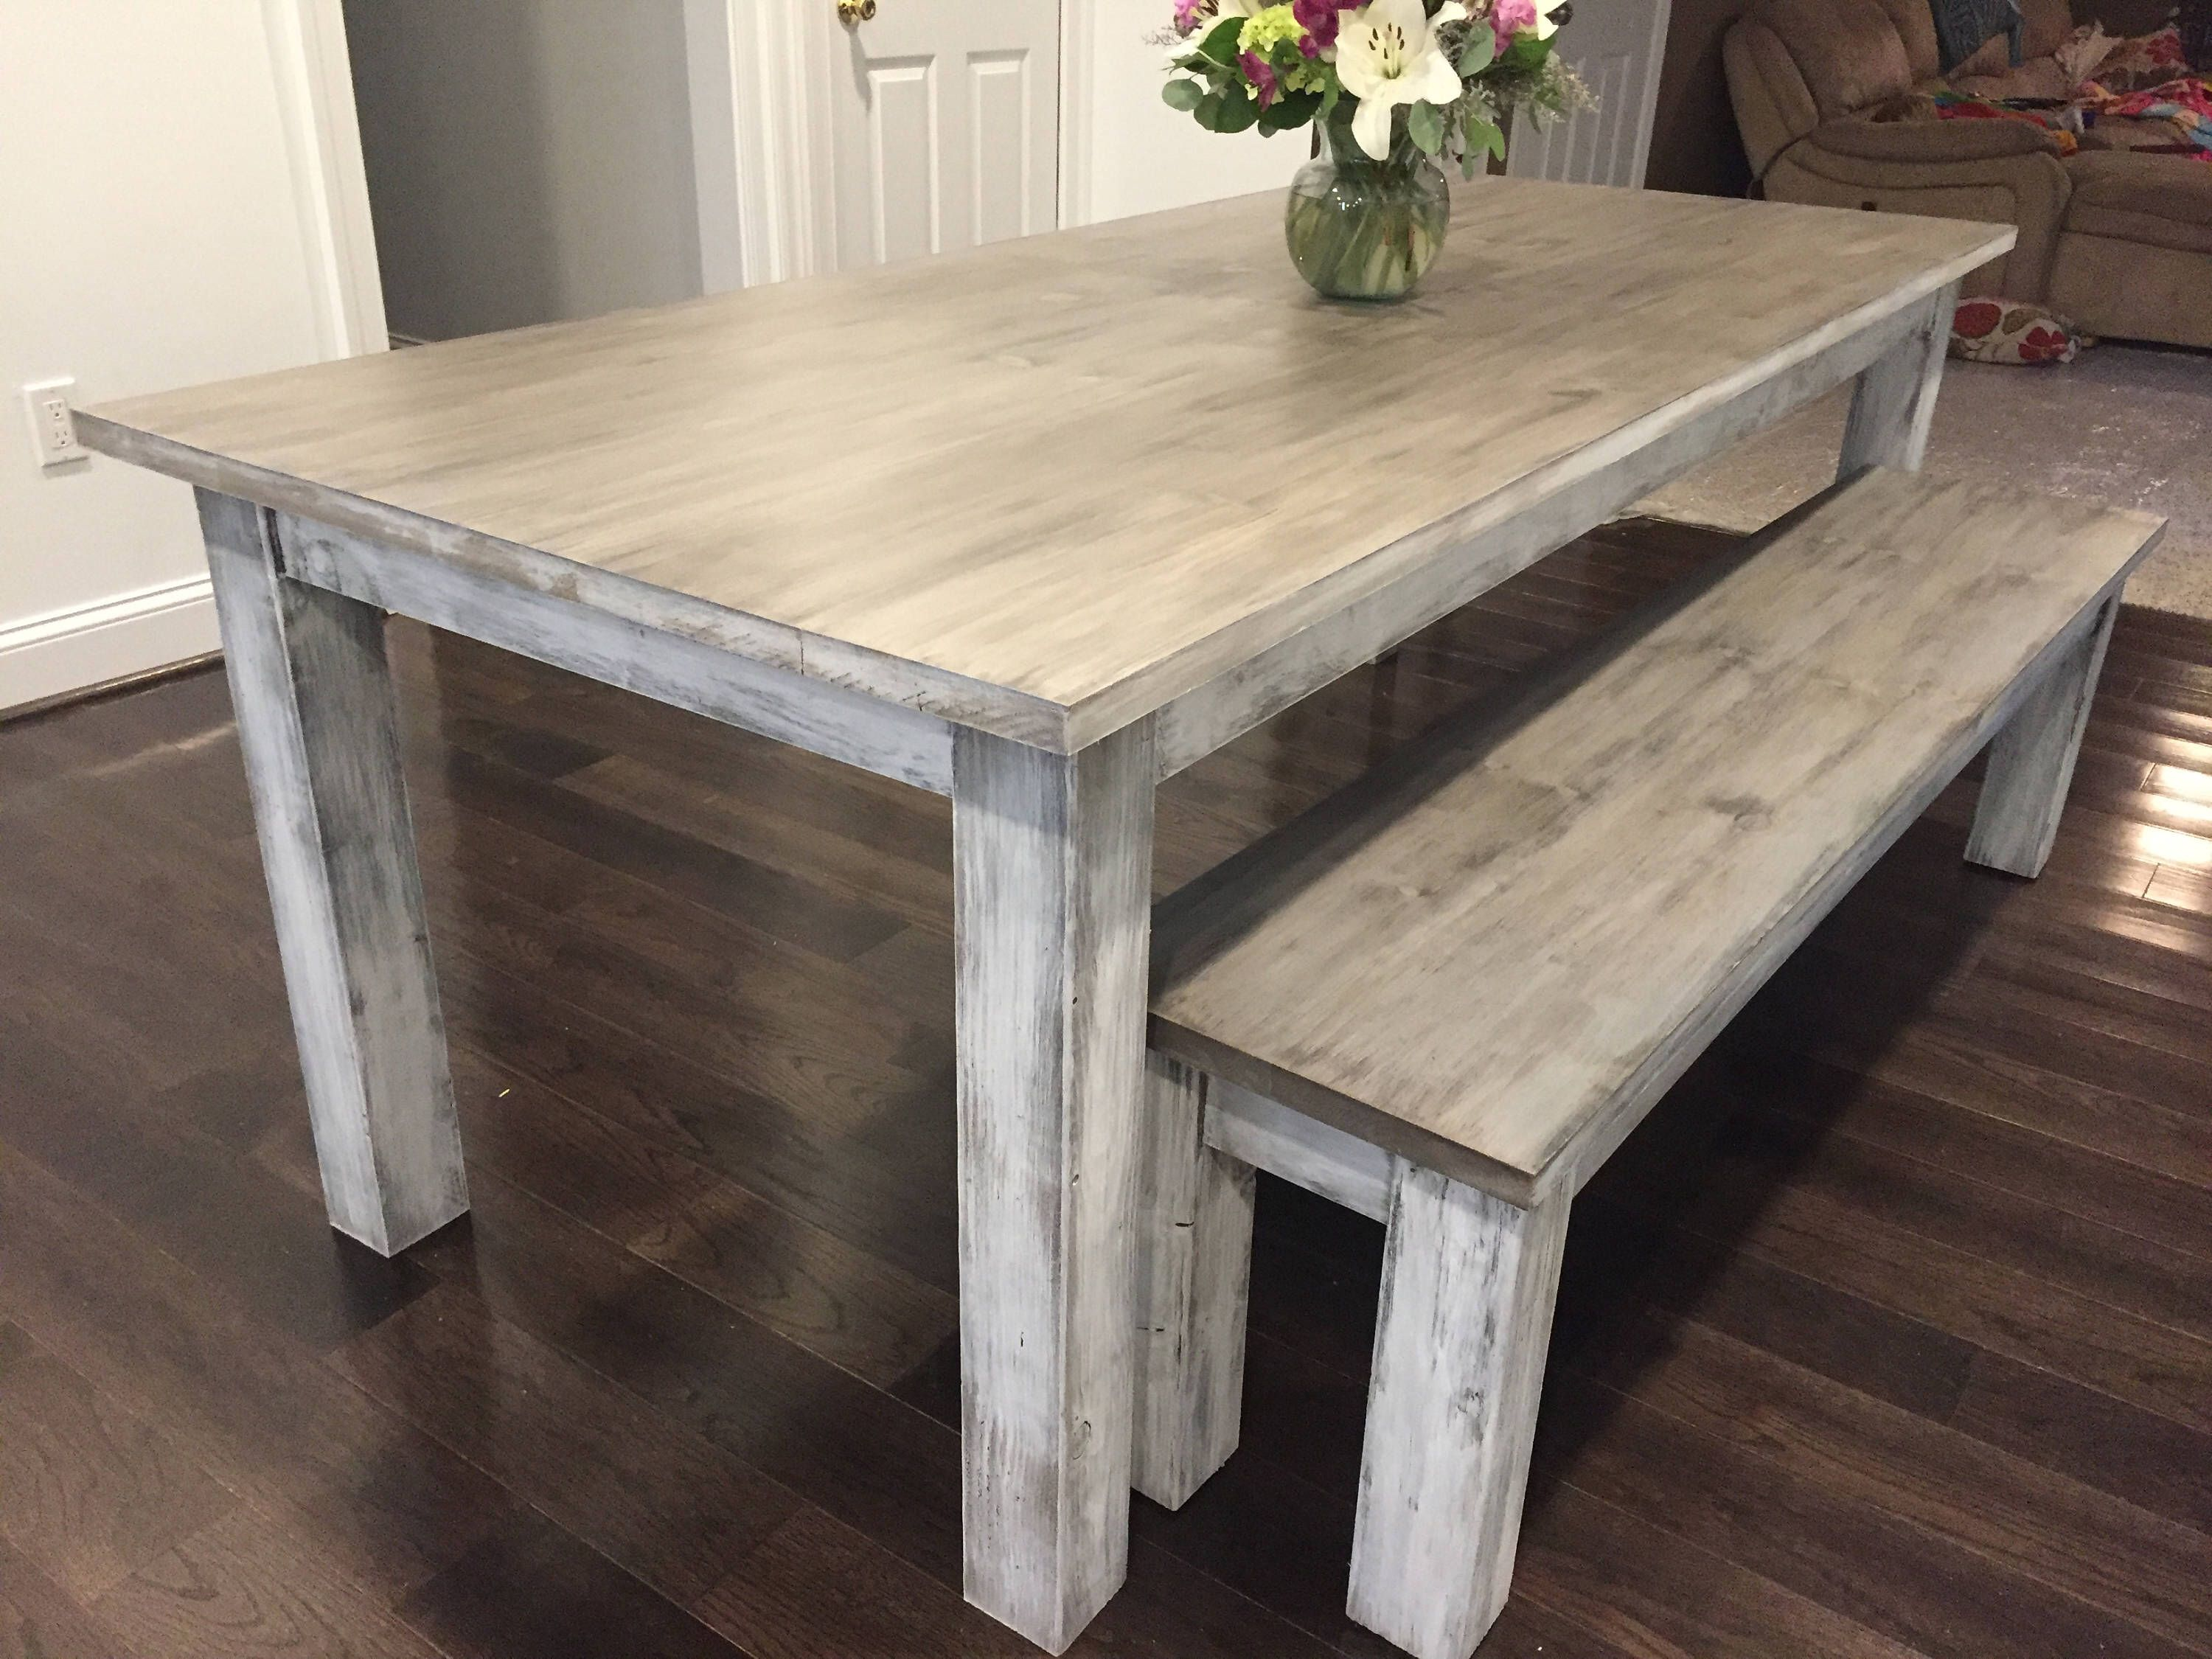 Custom Whitewashed Farm Table Up To 9 Length By